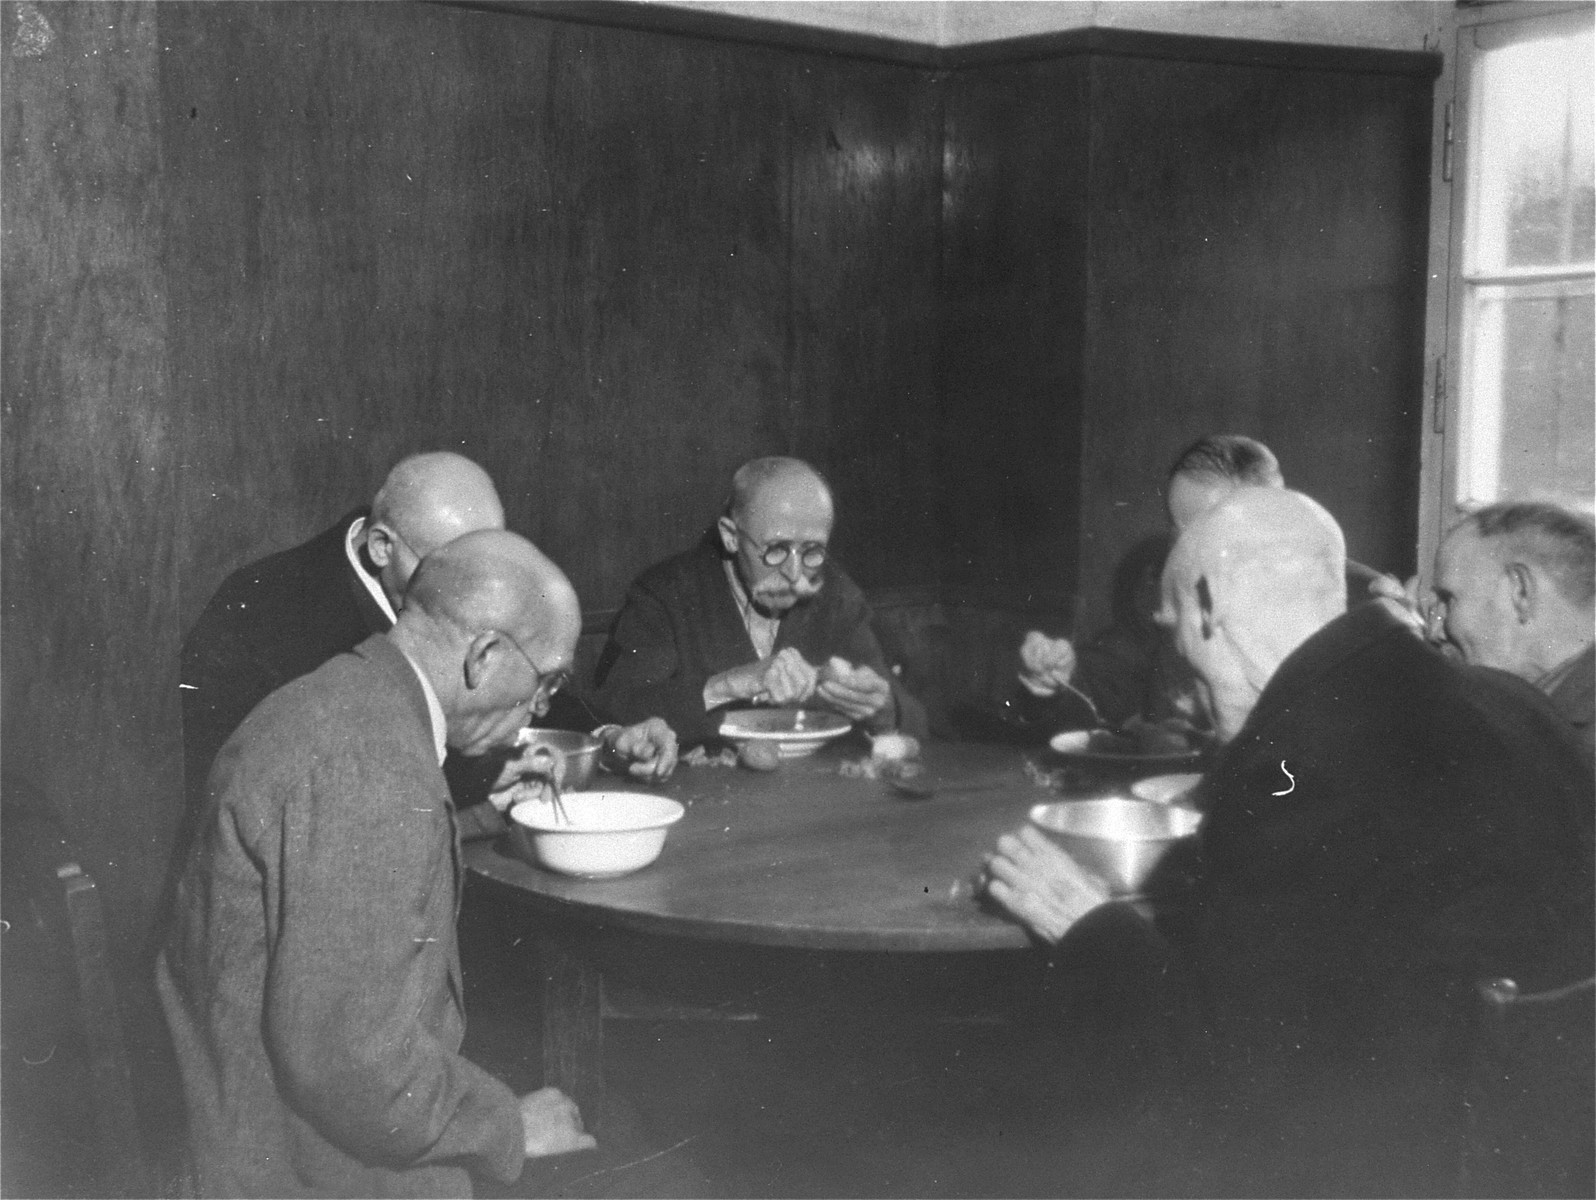 A group of elderly survivors eat a hearty meal at the Hadamar Institute after war crimes investigators demanded they be given larger rations.   The photograph was taken by an American military photographer soon after the liberation.